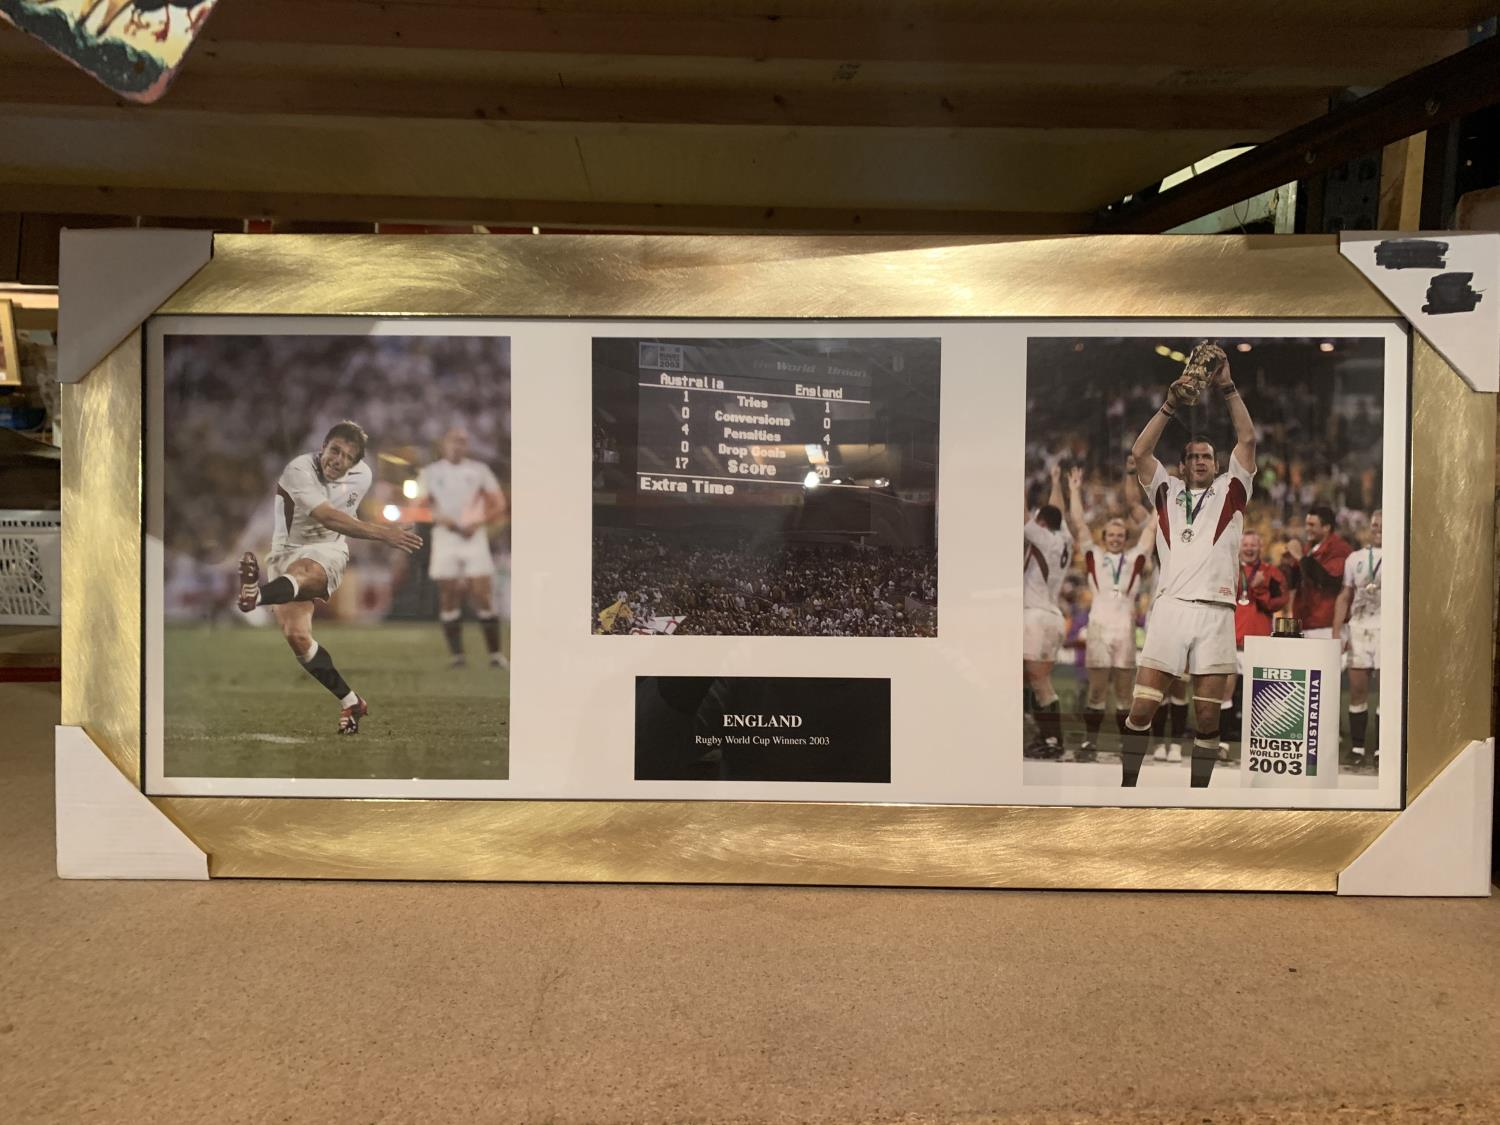 A FRAMED PRINT OF RUGBY WORLD CUP WINNERS 2003 - Image 2 of 8